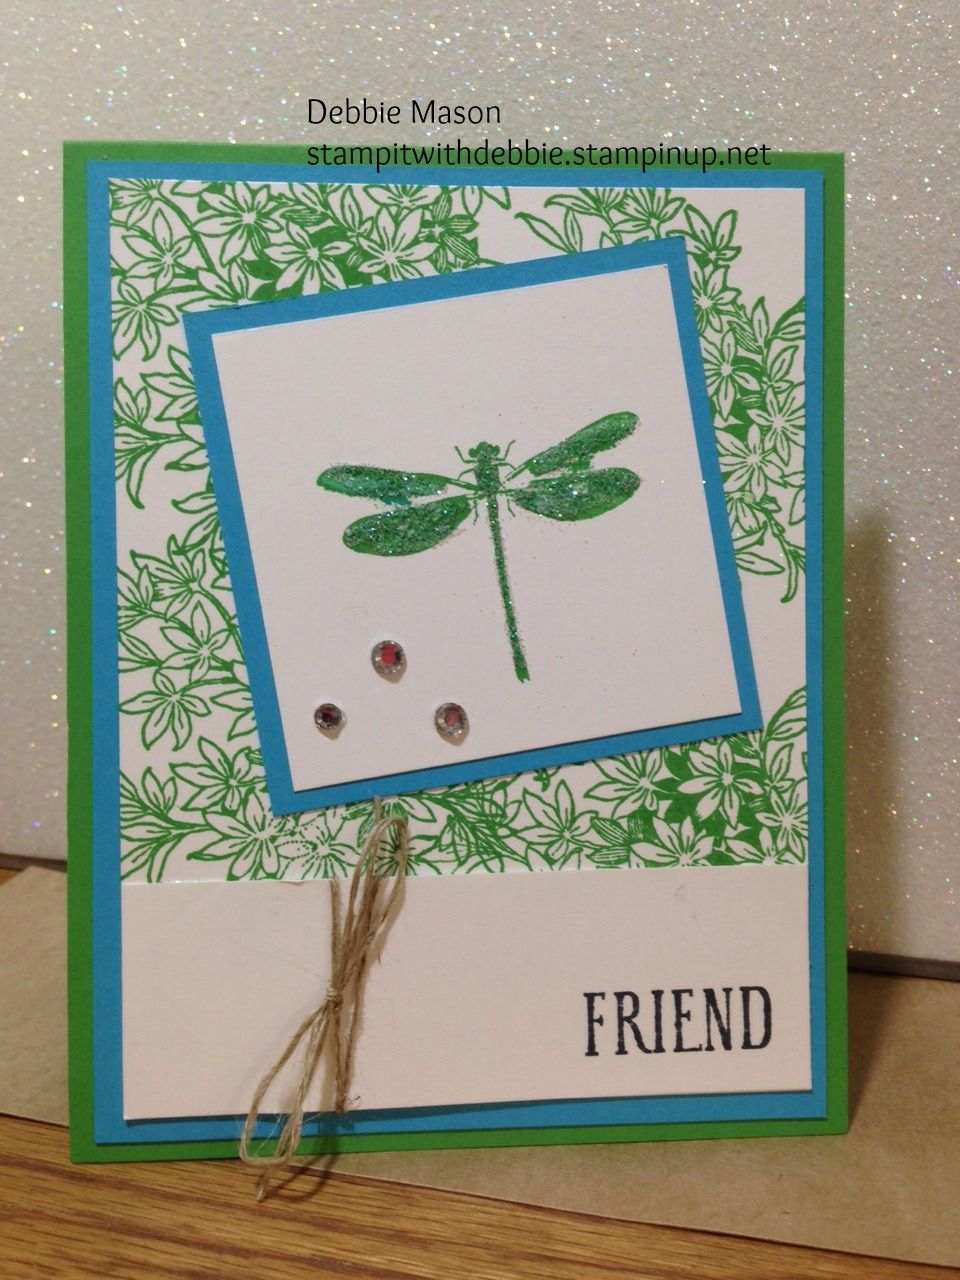 Dragonflies are my favorite. I created this card with the Stampin' Up! stamp set called Awesomely Artistic. Colors used are the new 2015-2017 in color Cucumber Crush along with Tempting Turquoise. stampitwithdebbie.stampinup.net